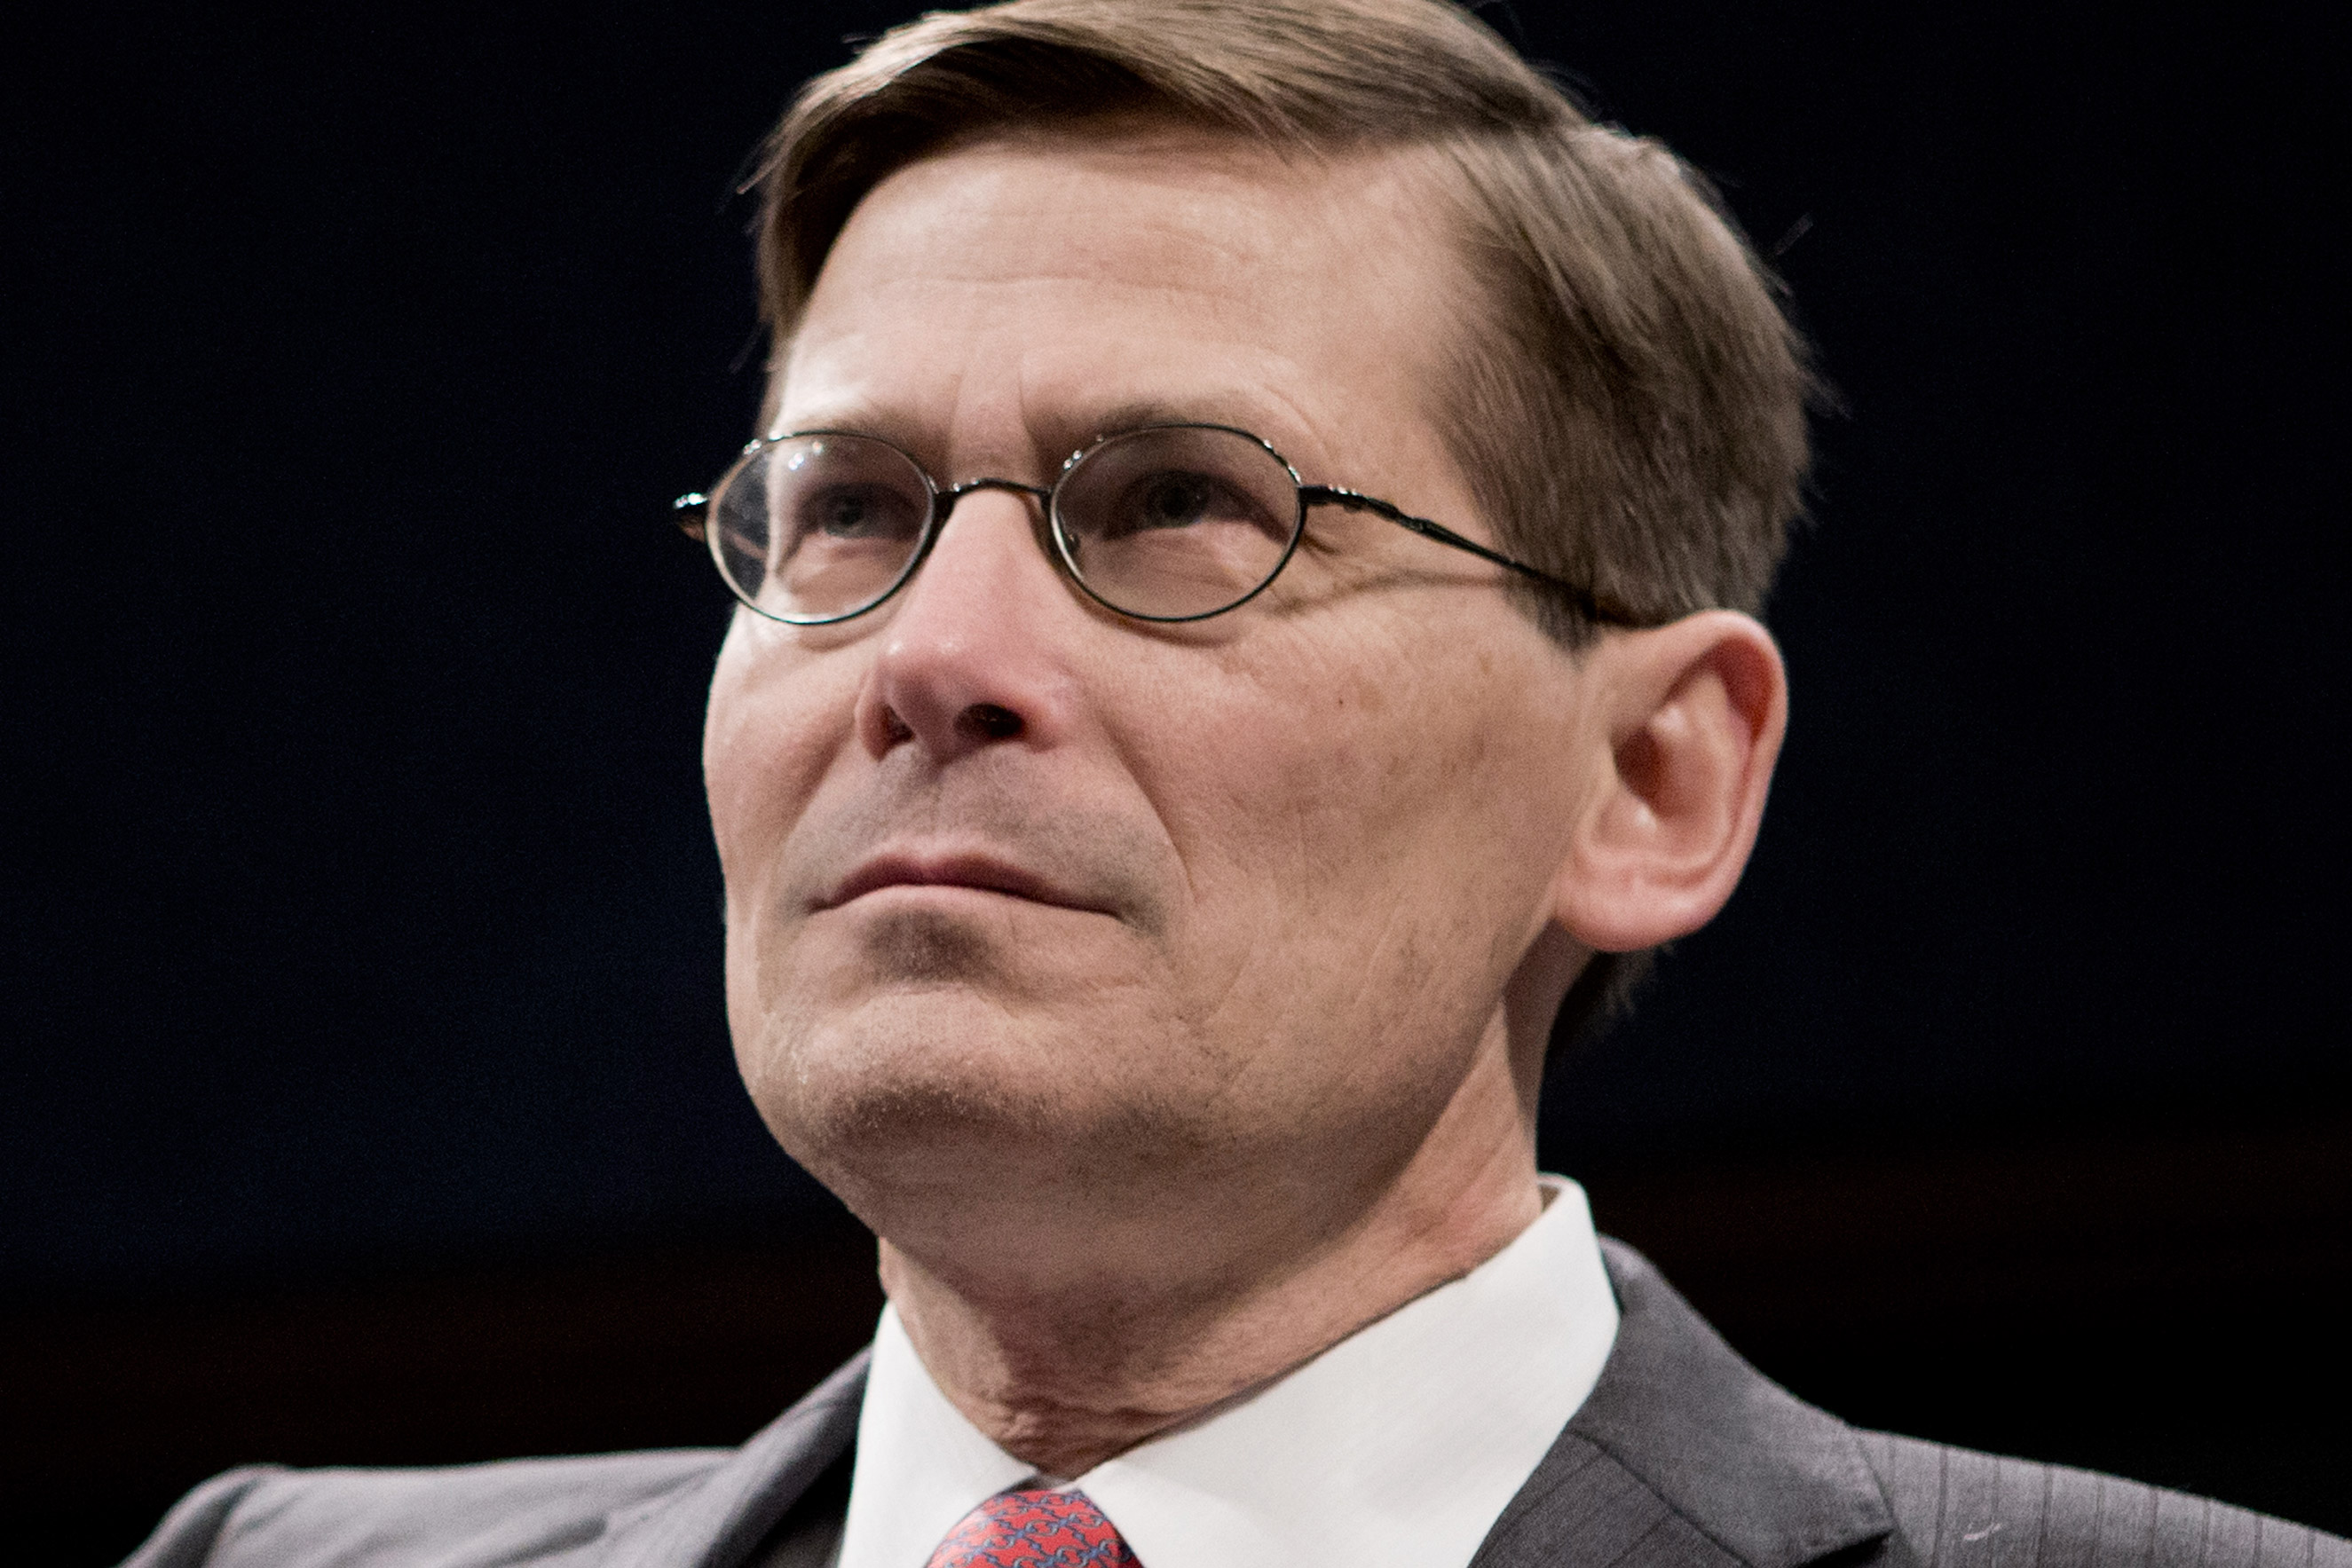 Former CIA Deputy Director Michael Morell on Capitol Hill in Washington on April 2, 2014.